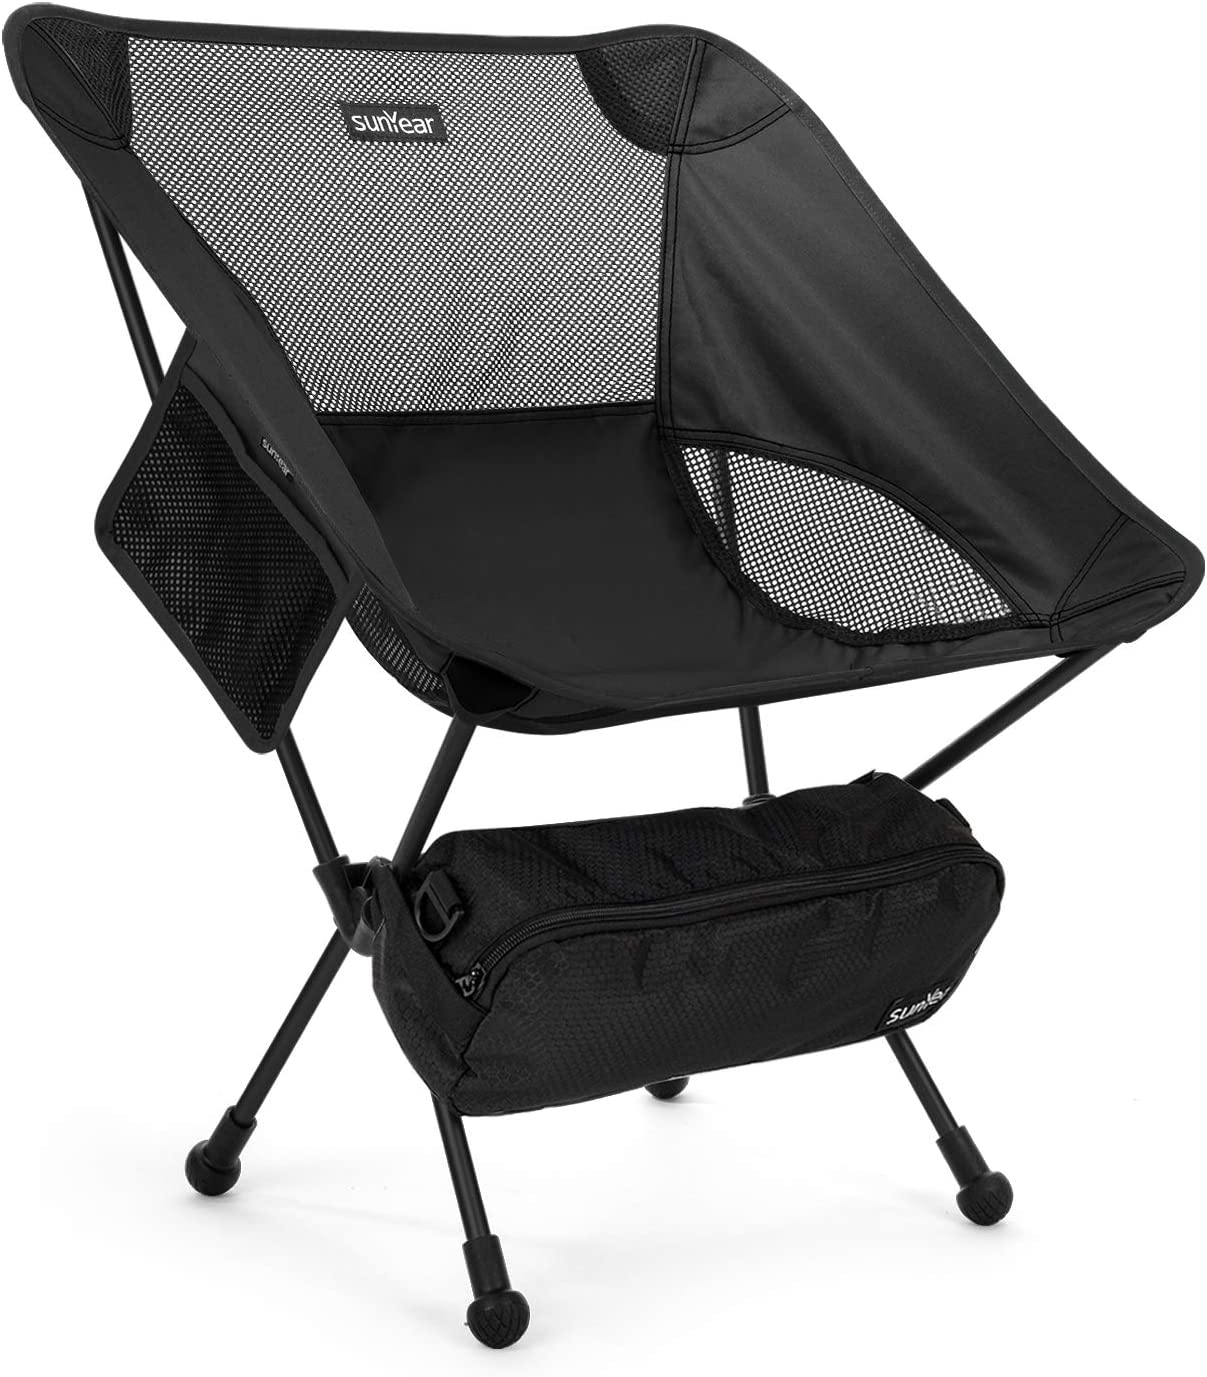 Amazon Com Sunyear Lightweight Compact Folding Camping Backpack Chairs Portable Breathablem Comfortable Perfect For The Outdoors Camping Hiking Picnic Sports Outdoors